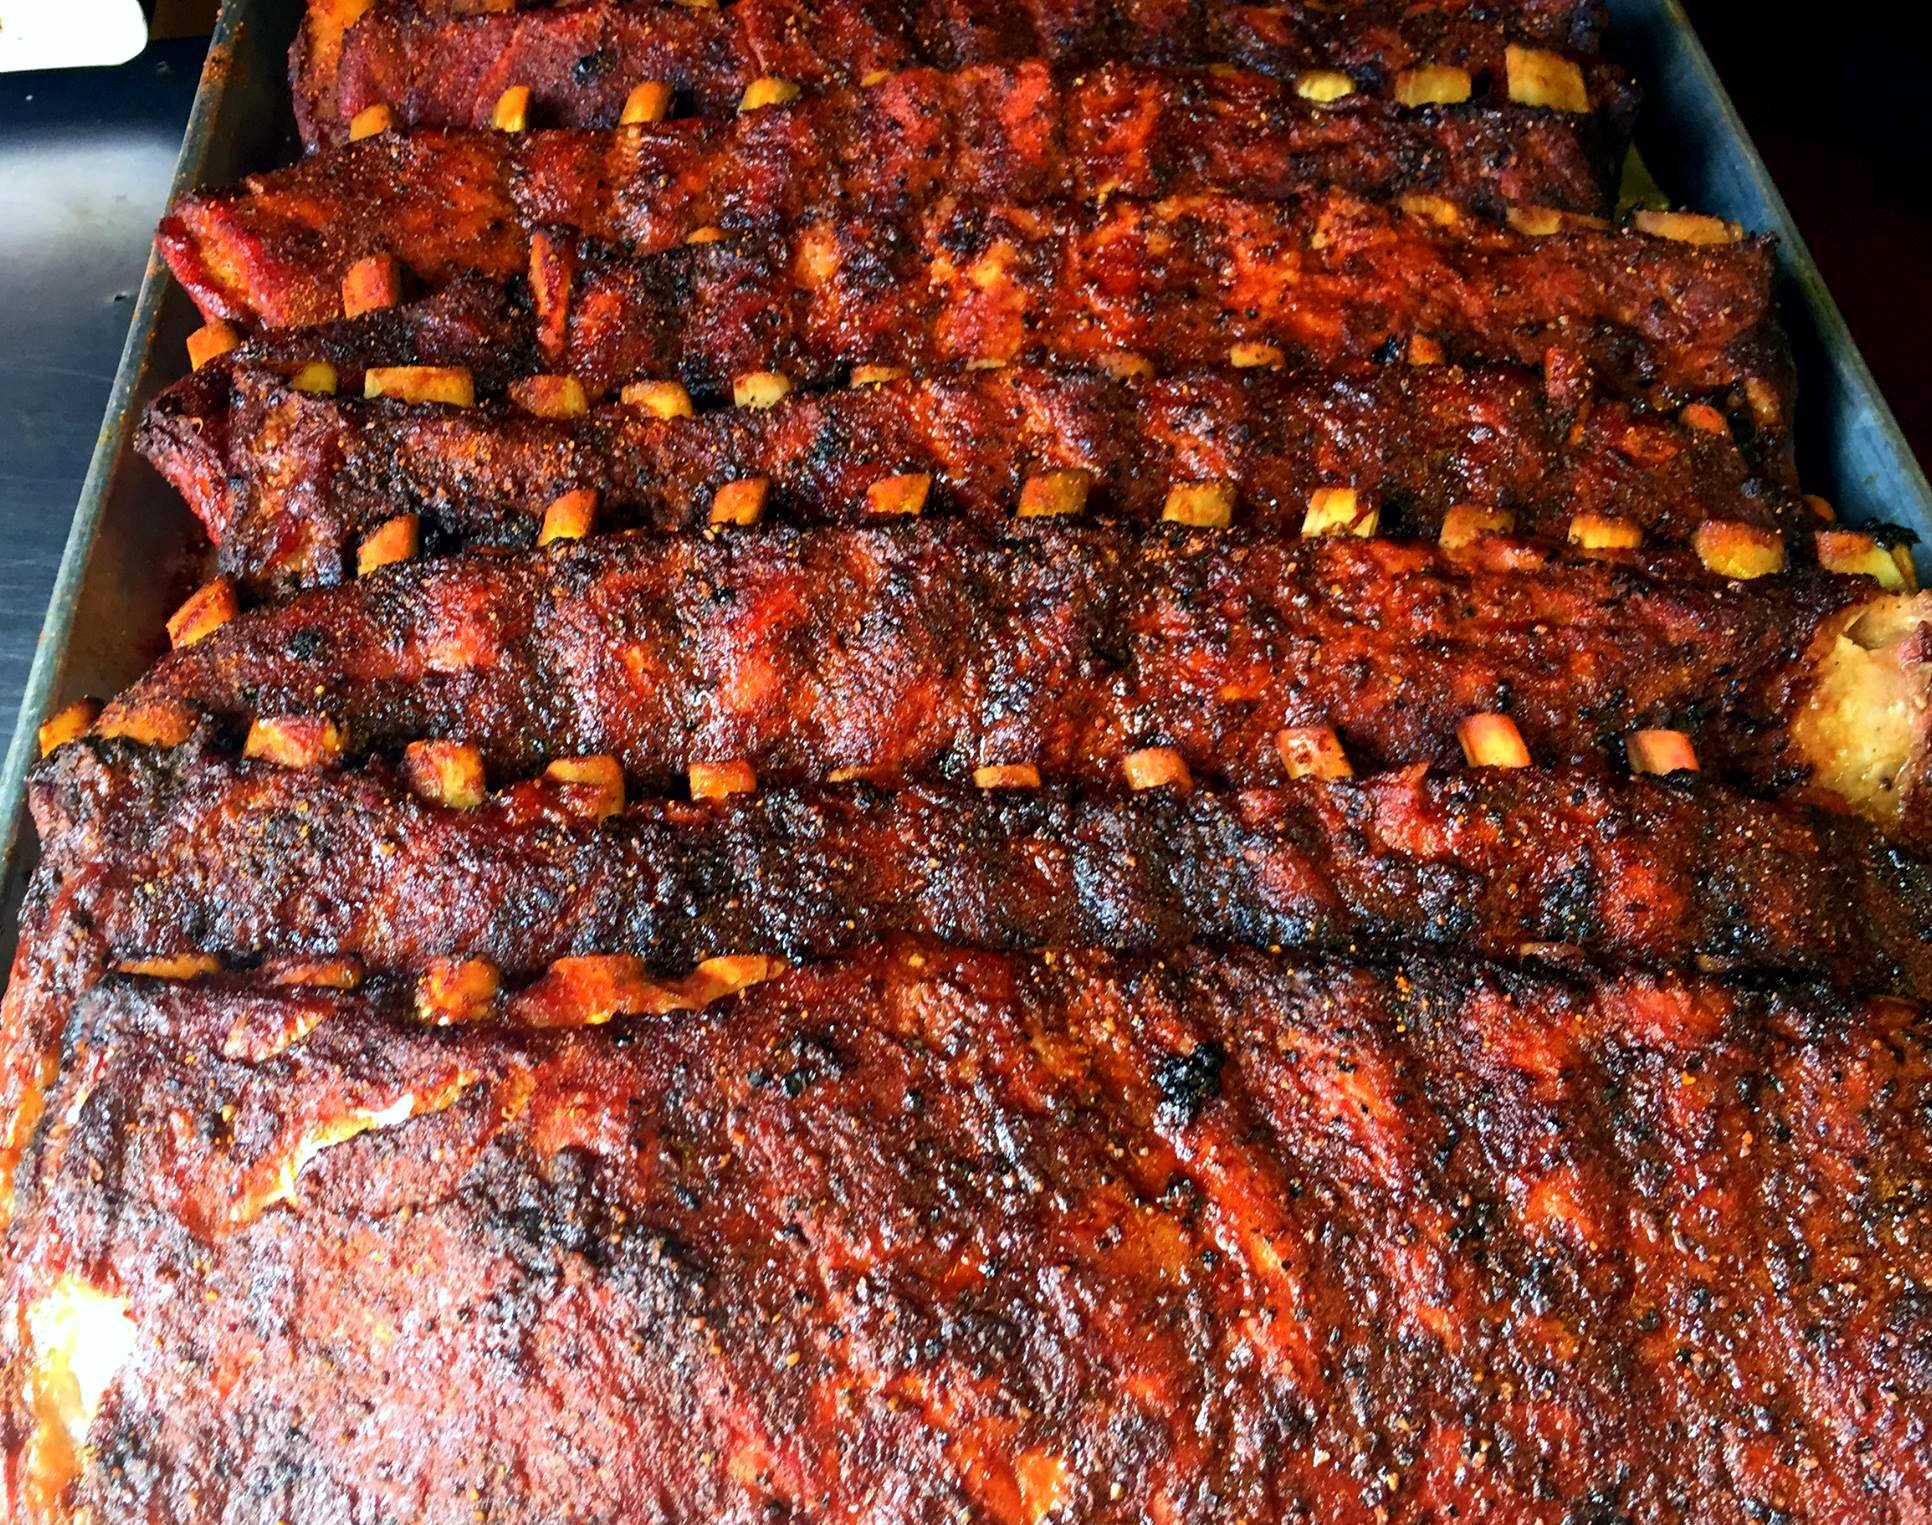 Tray of Ribs